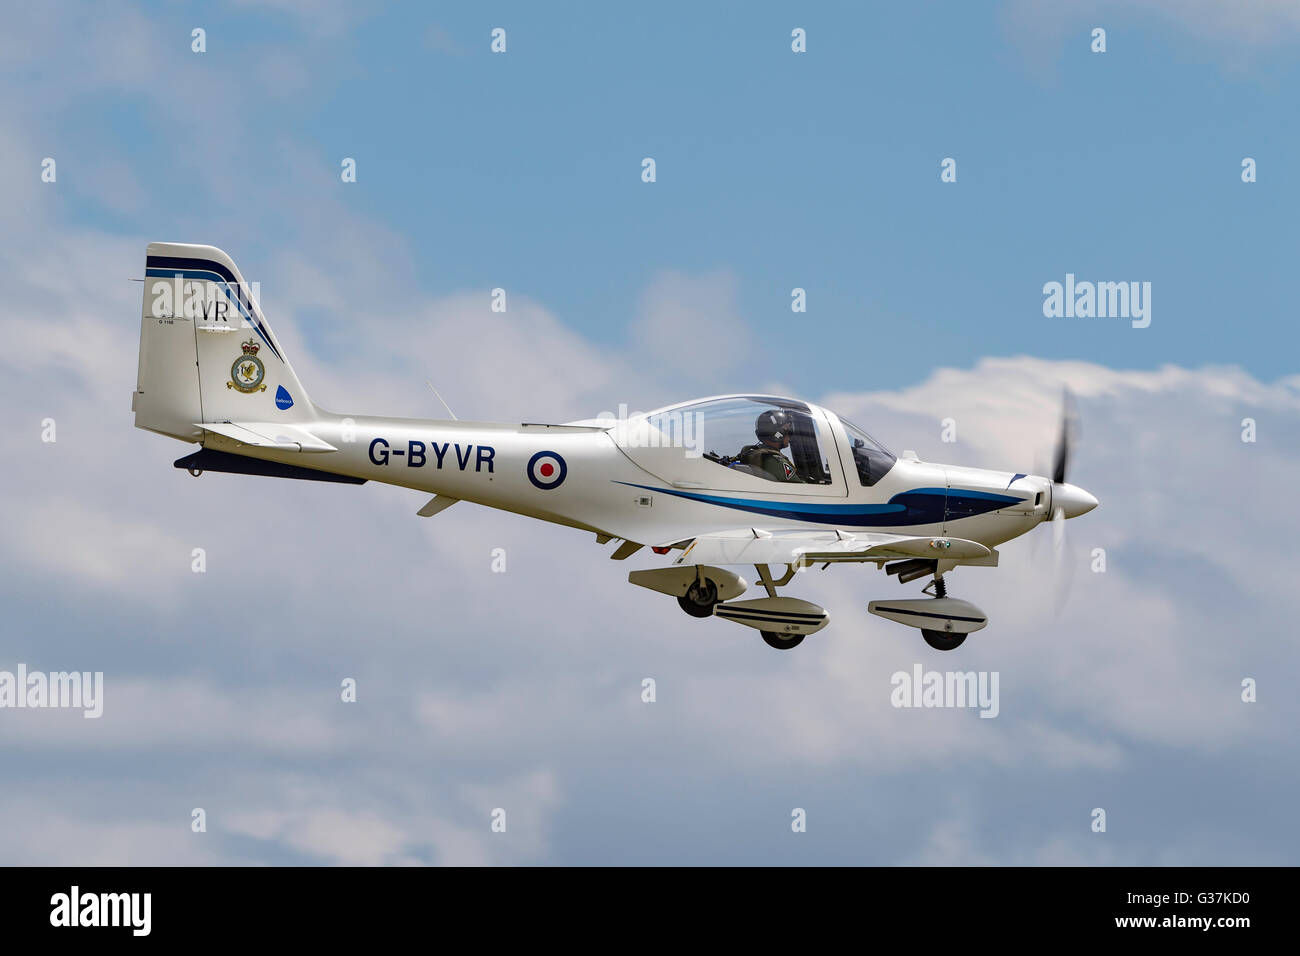 Royal Air Force (RAF) Grob G-115E Tutor G-BYVR used for Elemtary flying training - Stock Image